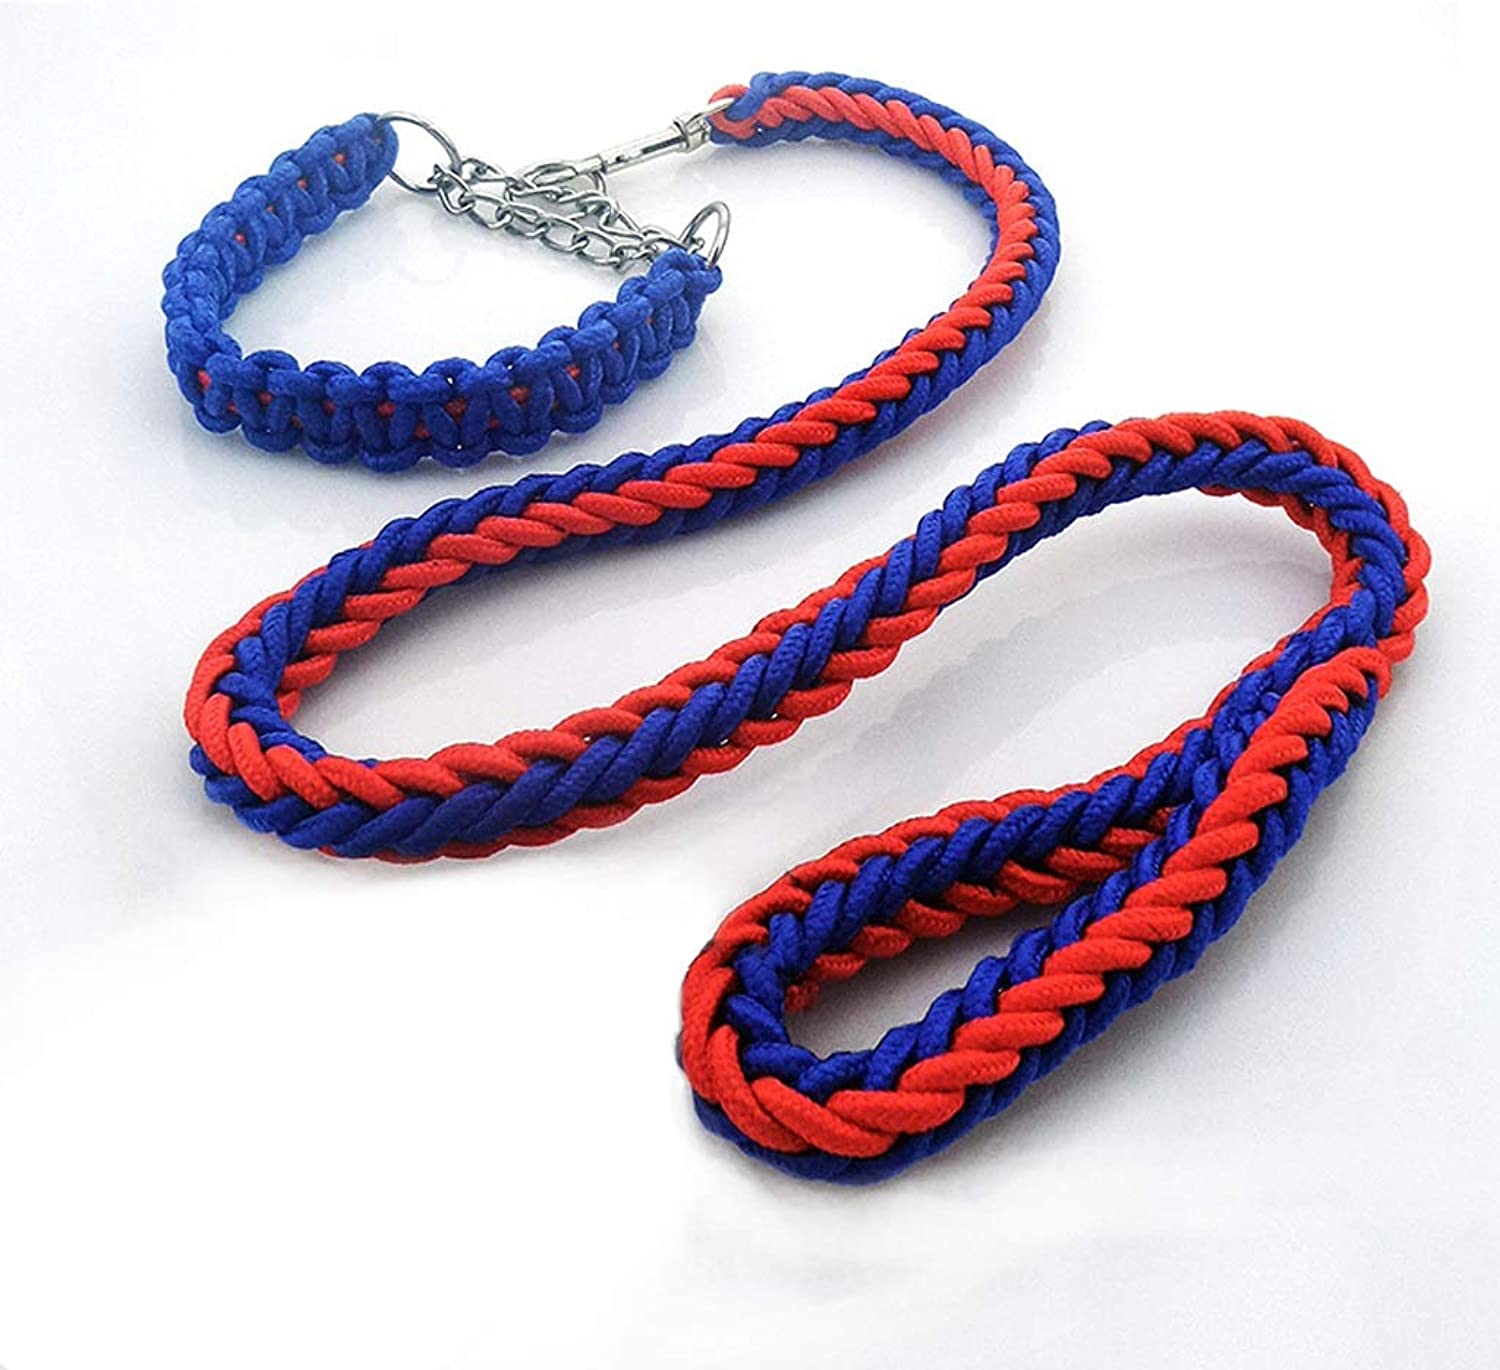 LZRZBH Pet Supplies P Chain Dog Leashes Dog Leash Dog Chain Large Dog Medium Dog Alaska and Other Dog Chains (color   bluee, Size   M)